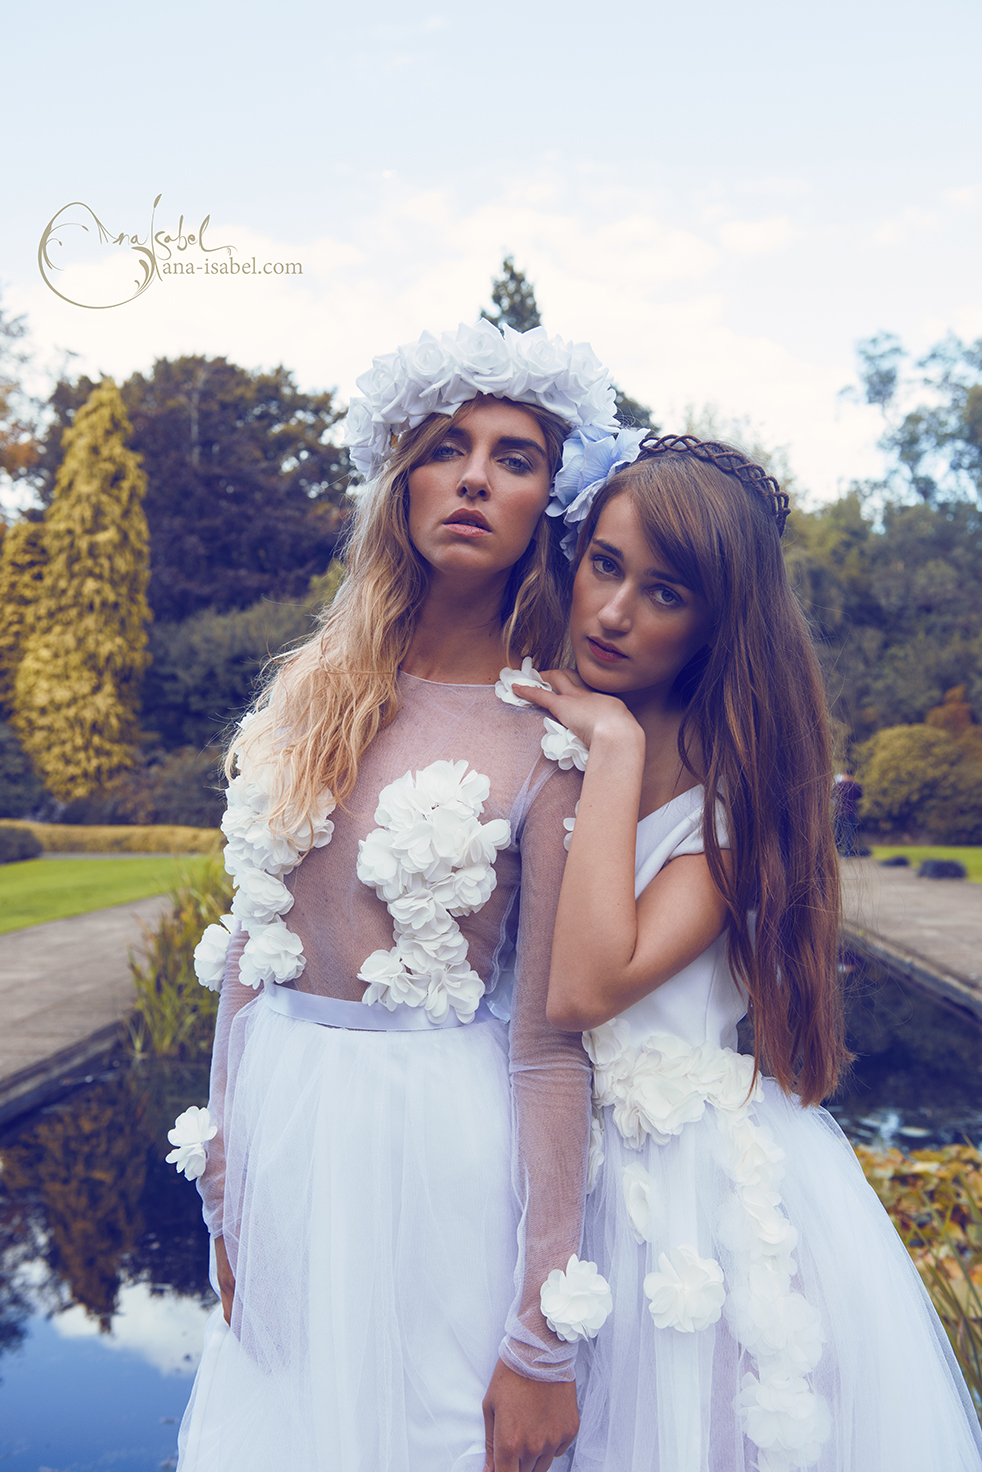 Model: Timea Orban & Alessandra Rocca  Photography: Ana Isabel  Dresses: Agnes Mira Rosa  Headdresses: Rouge Pony  Makeup: Sarah Shaw  Published: ELEGANT Magazine